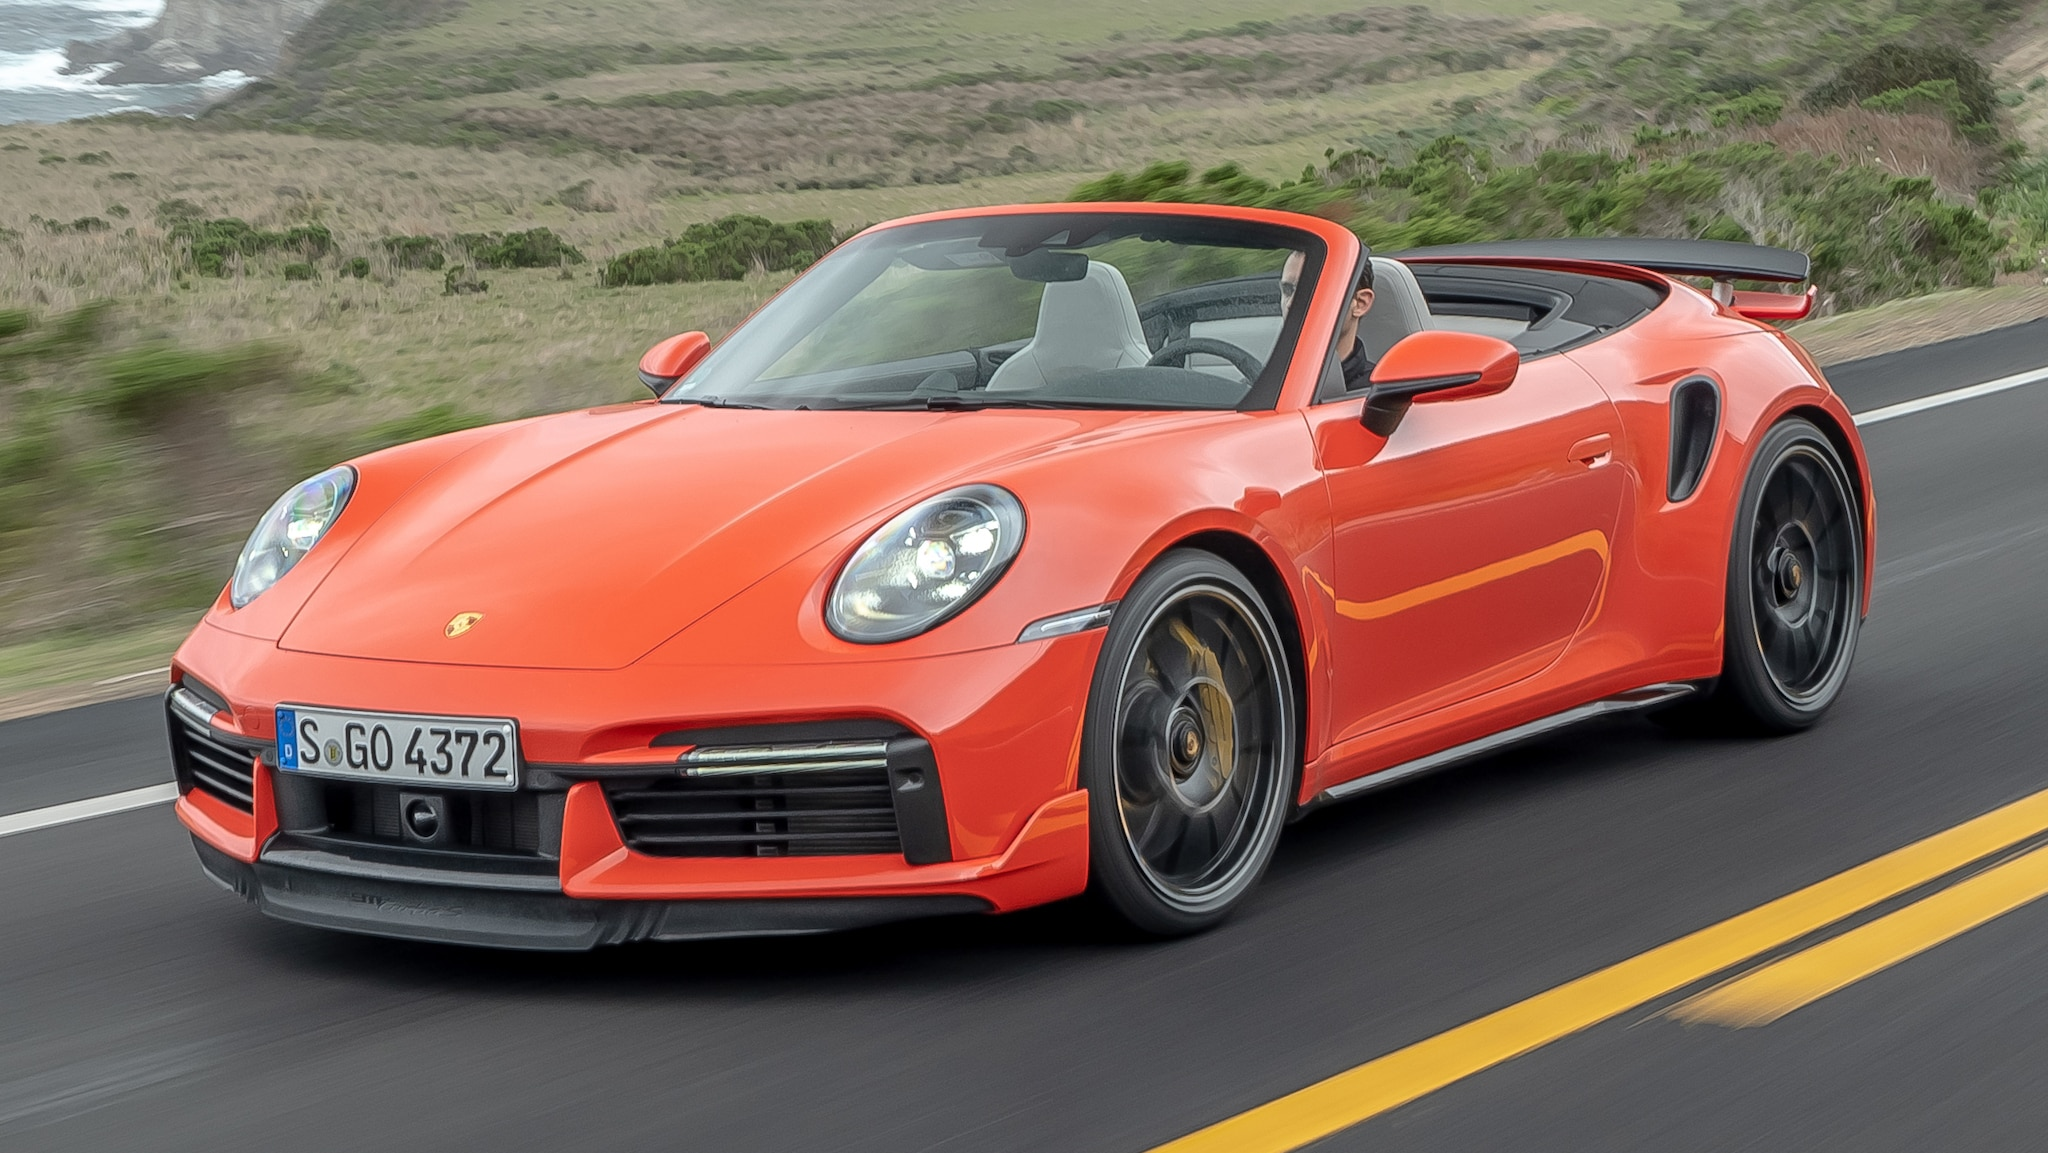 What S Included With The Sports Design Kit Of The 2021 Porsche 911 Turbo S Technology Shout